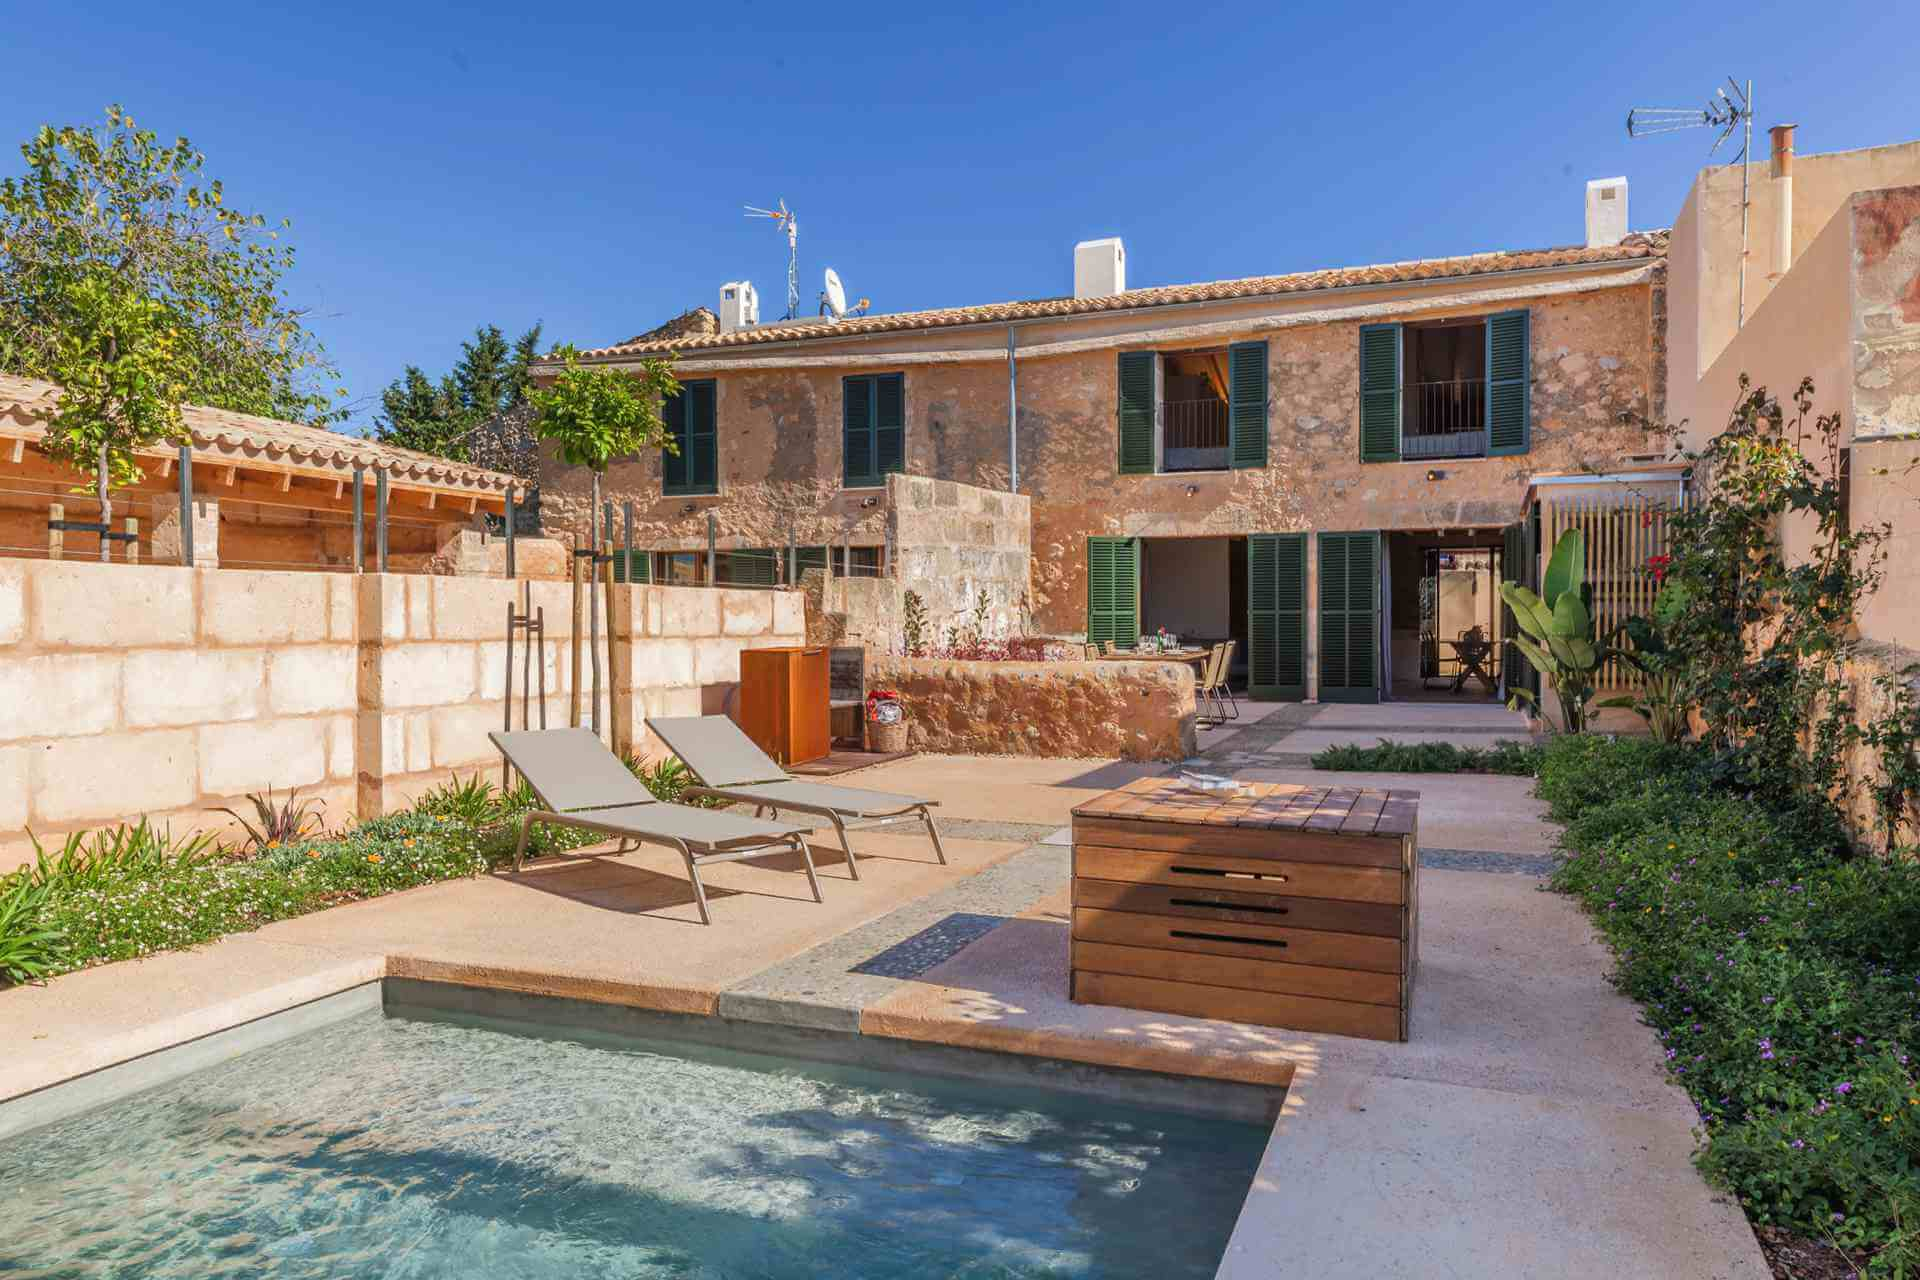 01-253 modern semi-detached House Mallorca Bild 1